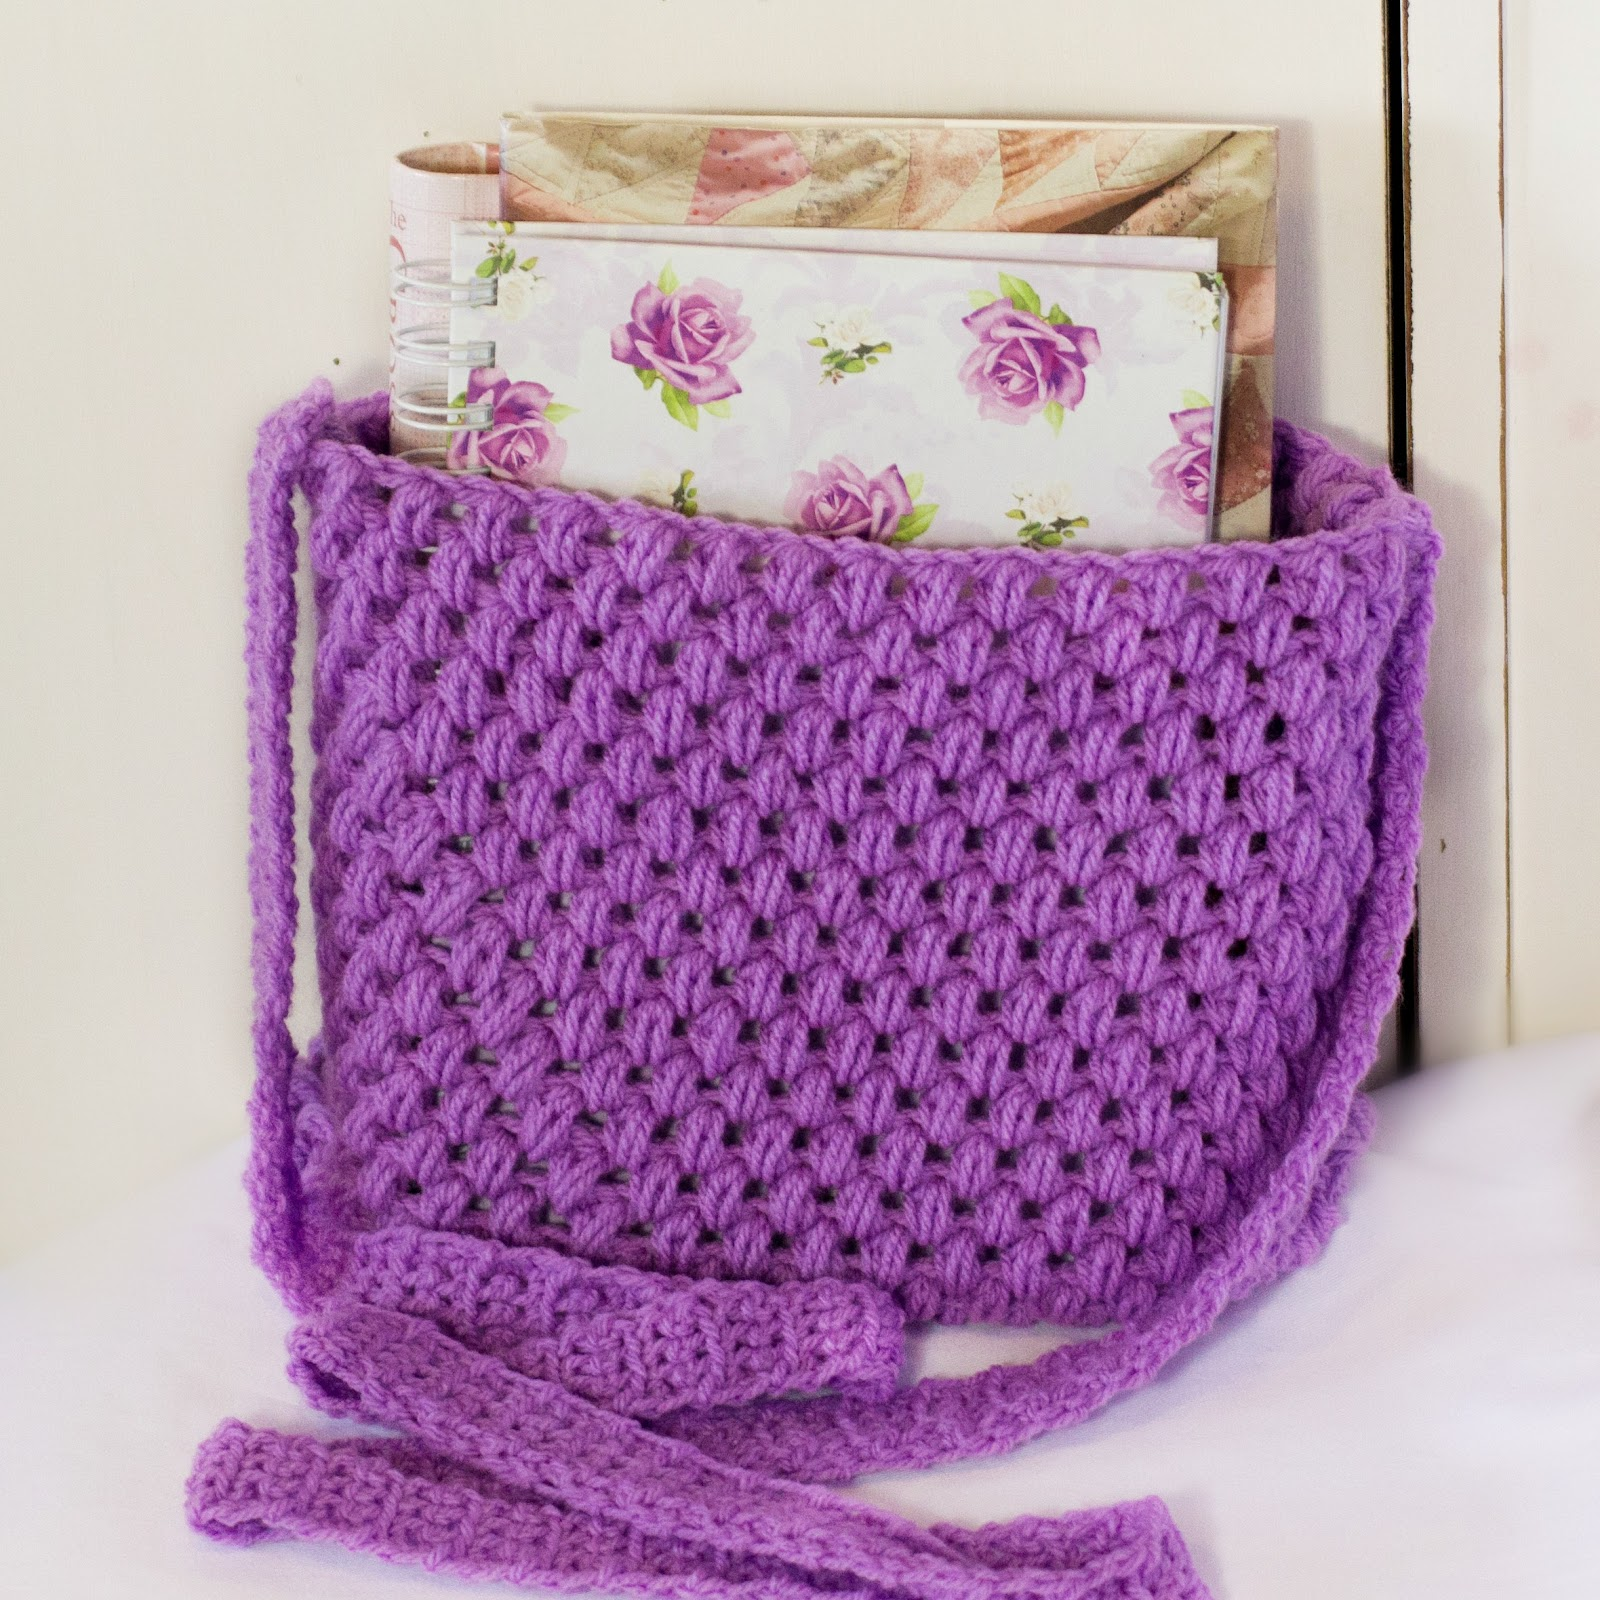 Crochet Patterns For Tote Bags : ... Craft, Crochet, Create: Out and About ~ Easy Tote Bag Crochet Pattern